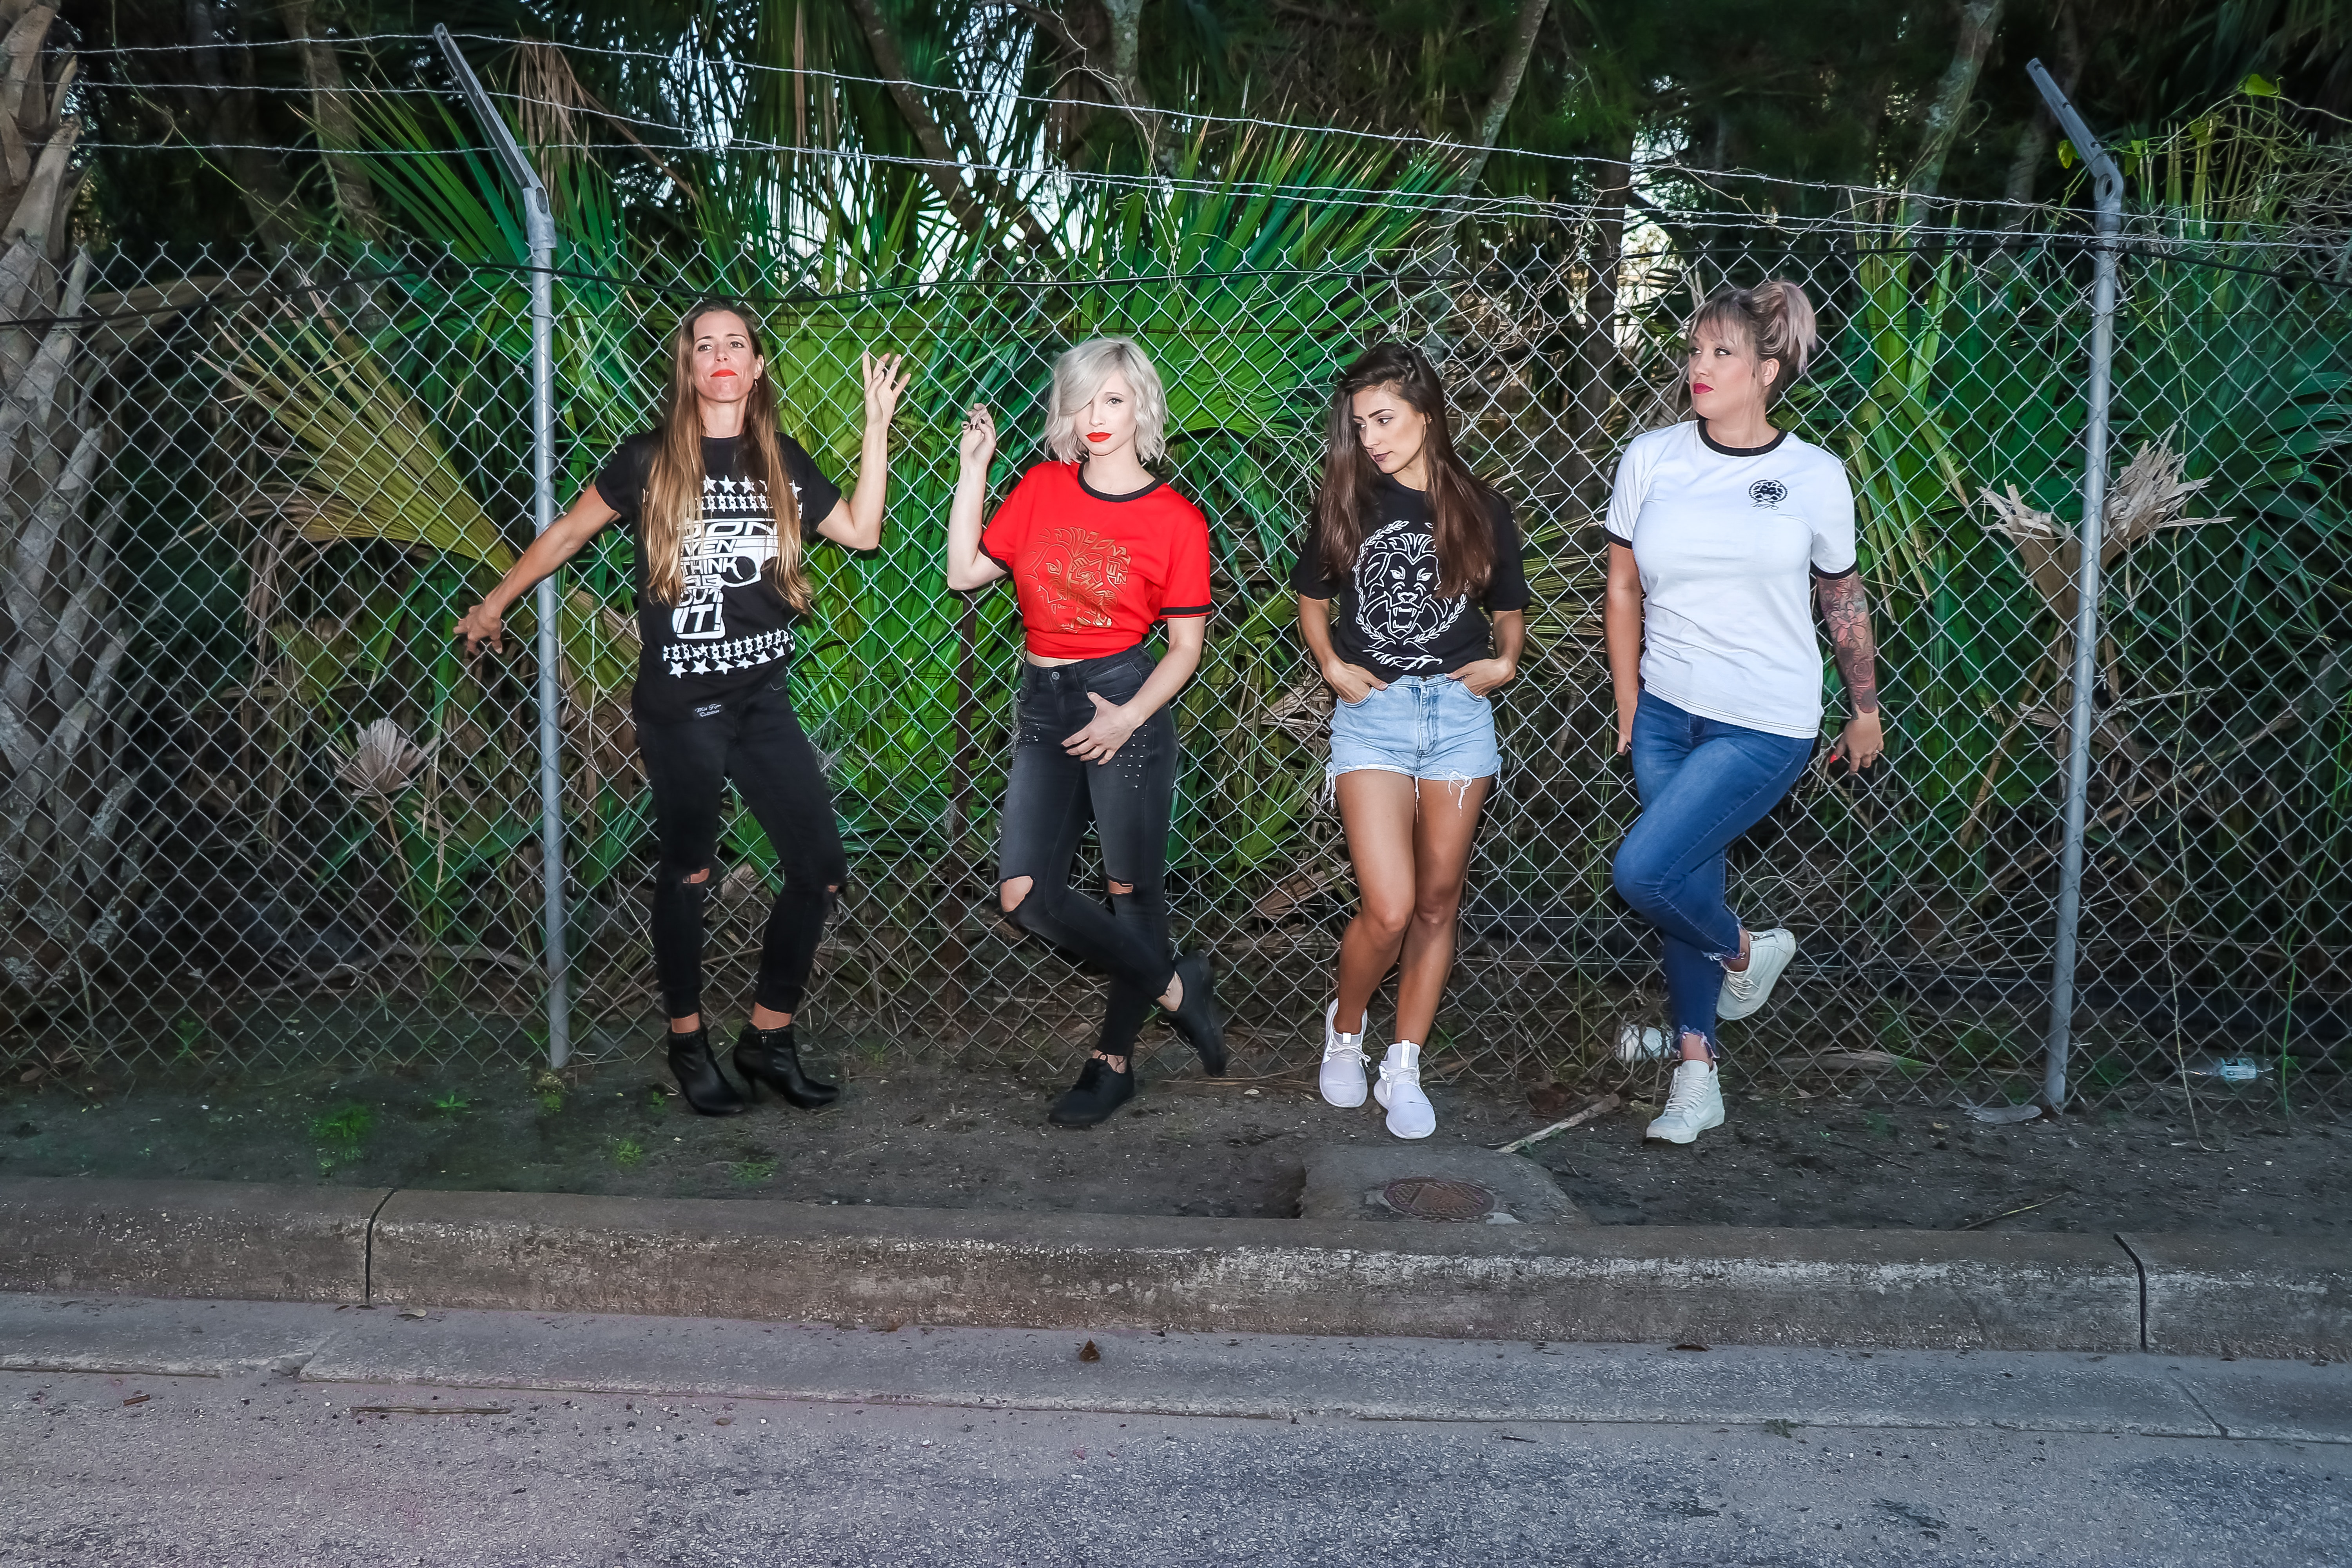 Group of women standing in front metal fence photo